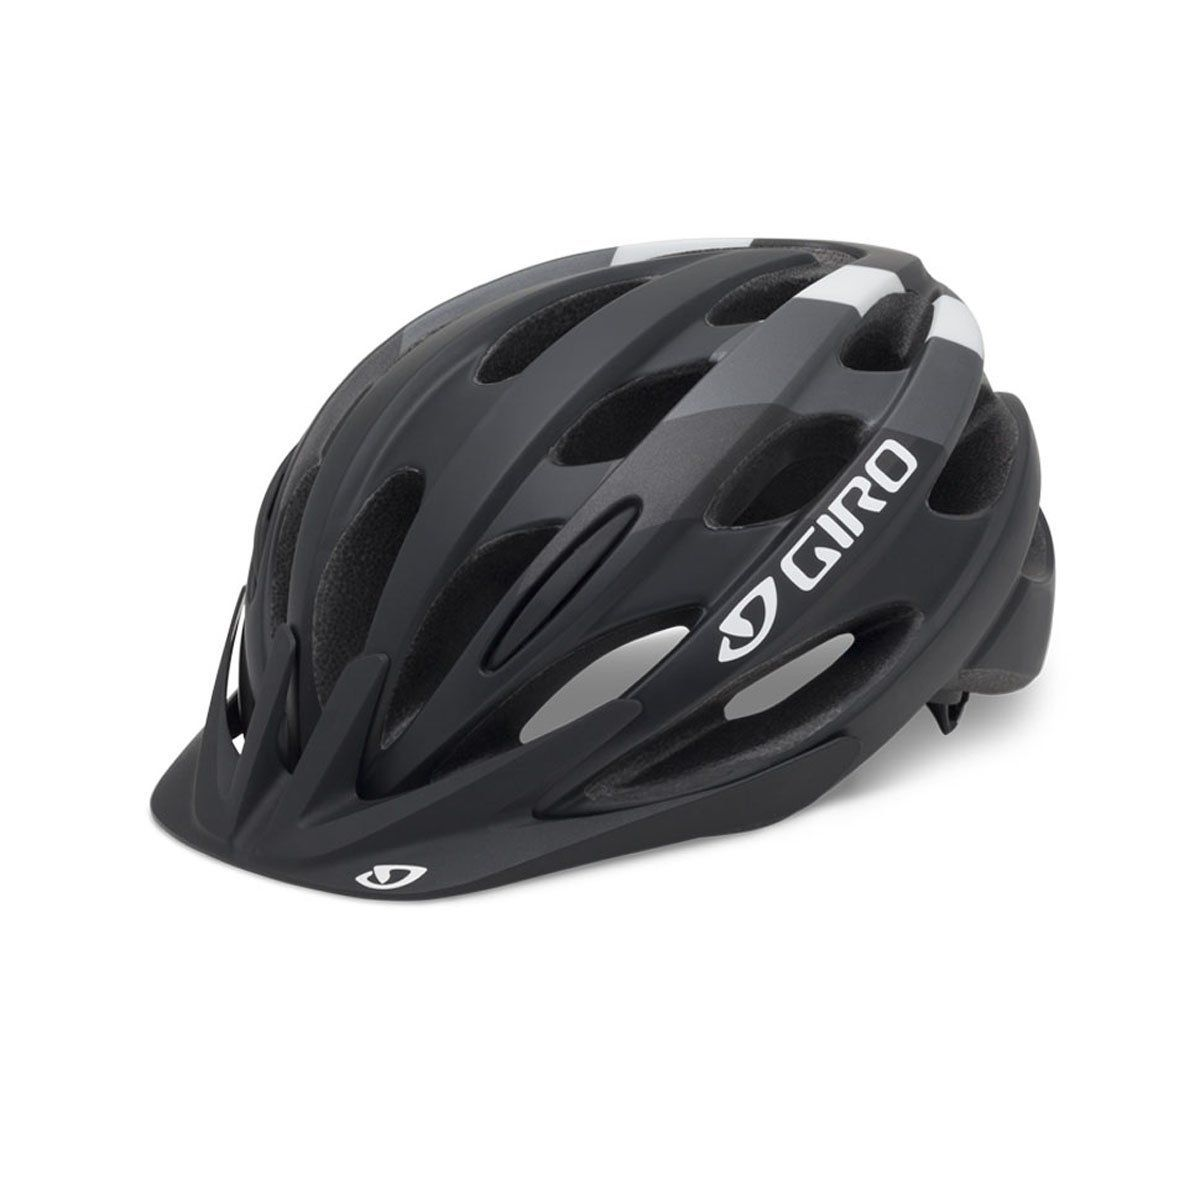 The highly rated Revel is a men's bike helmet that will offer you tough and reliable protection at every turn. The most prominent feature of this helmet is the Acu Dial Fit System, which provides the convenience associated with single-handed fit tension adjustments.